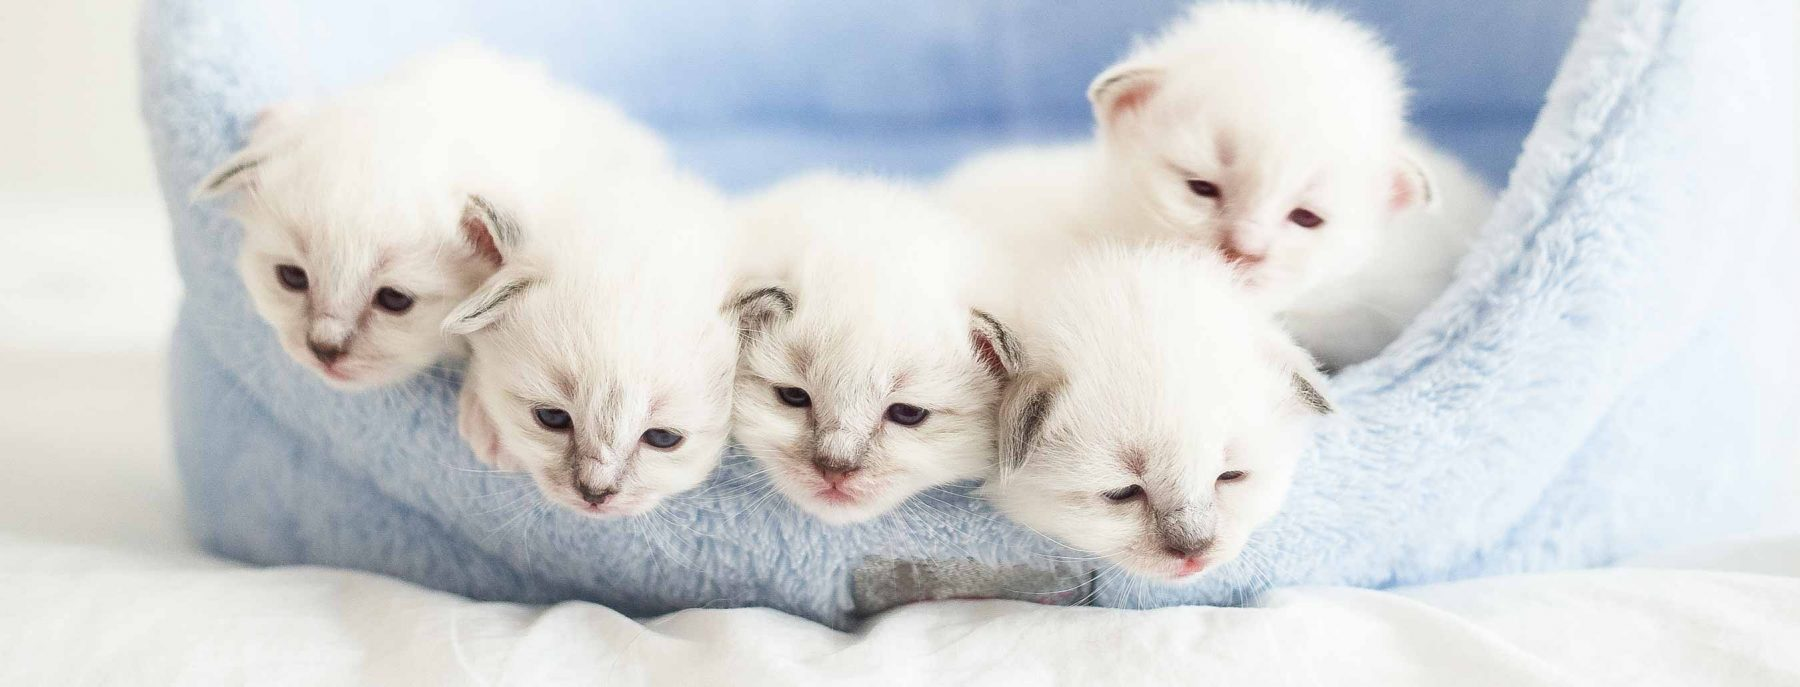 White kittens in a cat bed